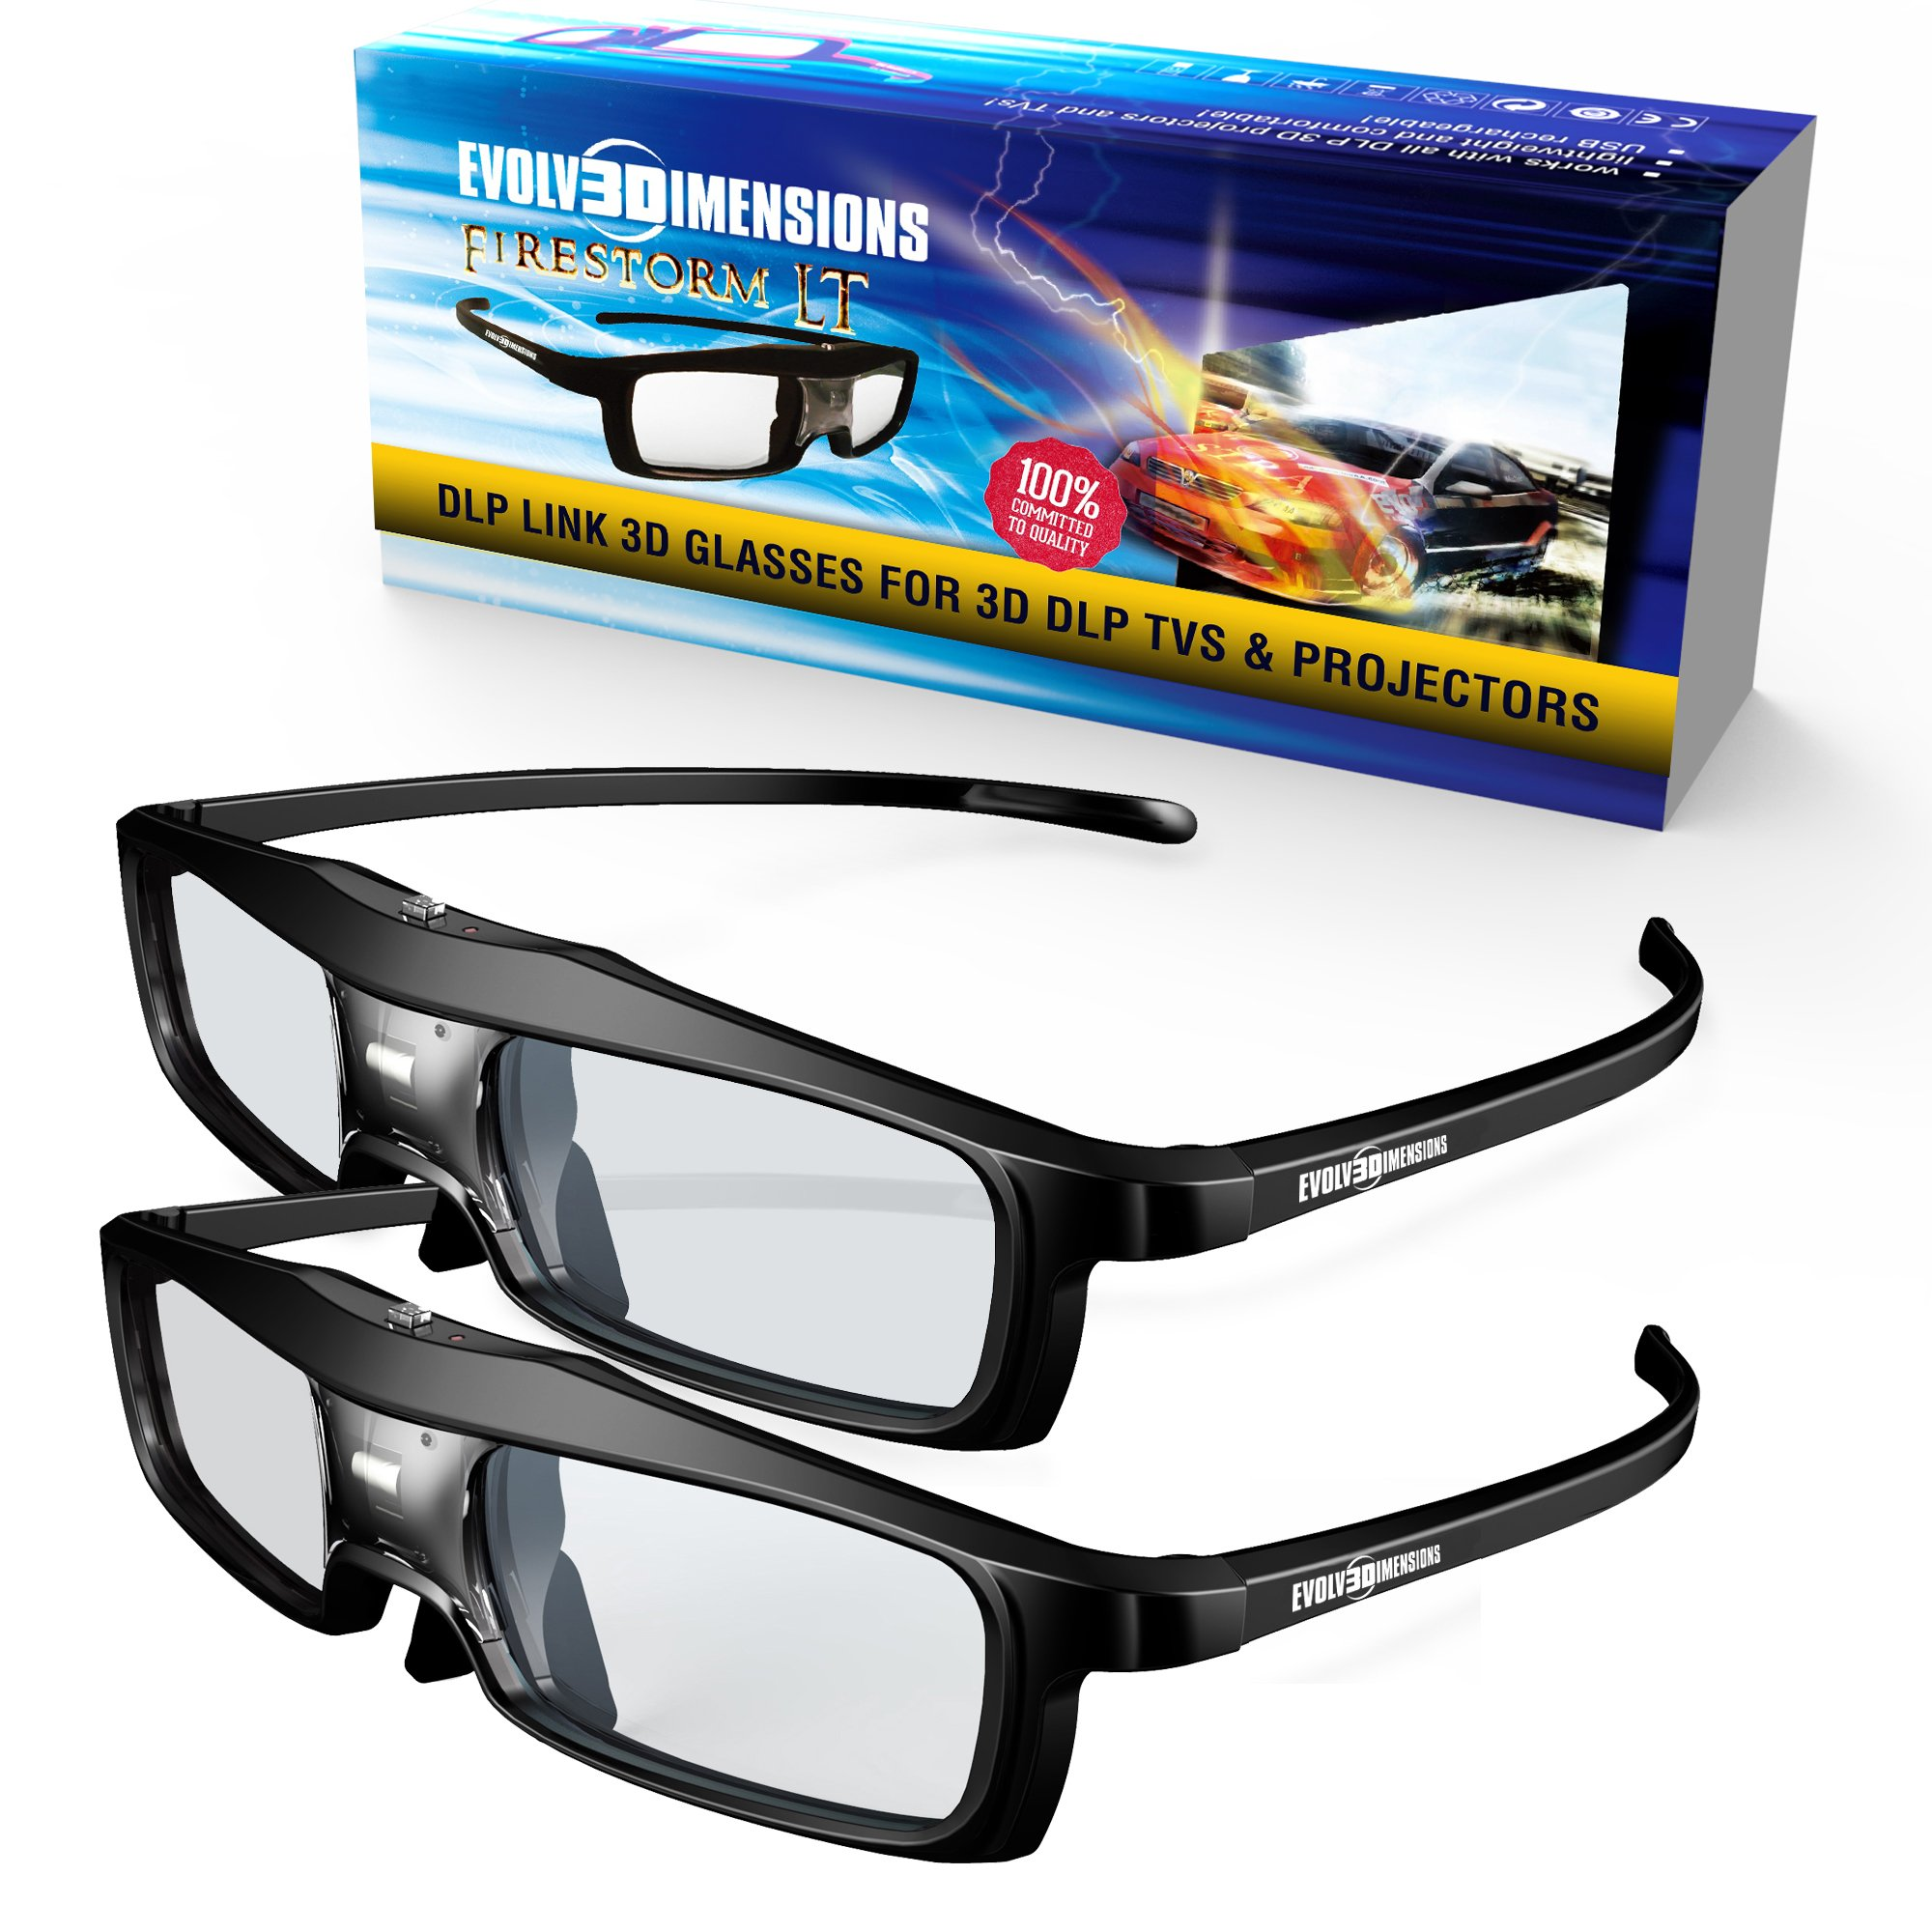 Evolved Dimensions (previously True Depth 3D) NEW Firestorm LT Lightweight Rechargeable DLP link 3D Glasses for All 3D Projectors (Benq, Optoma, Acer, Vivitek, Dell Etc) and All DLP HD 3D TVs (Mitsubishi, Samsung Etc) Compatible At 96 Hz, 120 Hz and 144 H by Evolved Dimensions